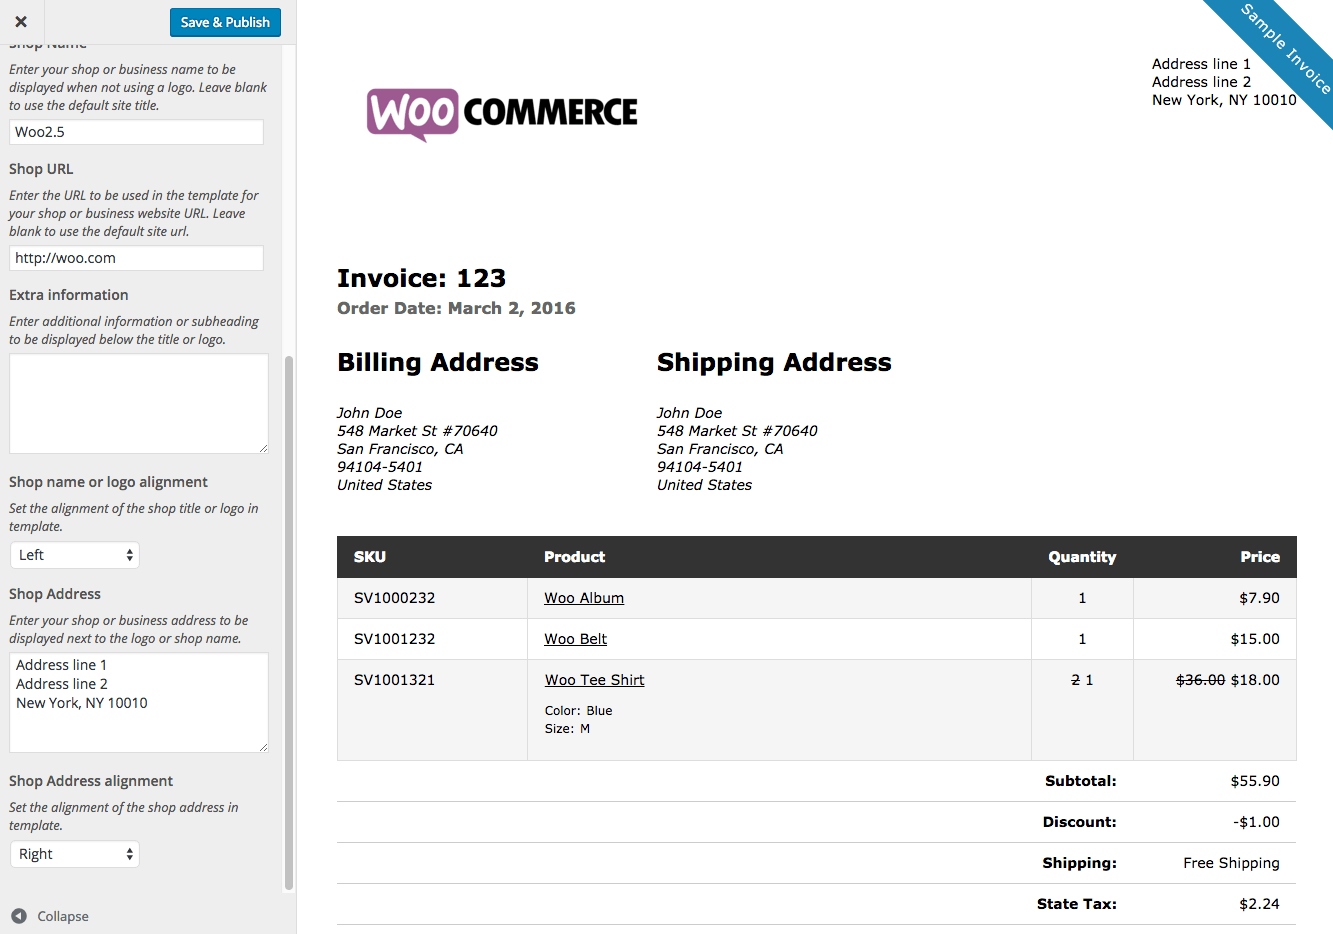 Ultrablogus  Nice Woocommerce Print Invoices Amp Packing Lists  Woocommerce Docs With Great Woocommerce Print Invoices  Packing Lists Customizer With Divine Sample Hotel Receipt Also Receipt For Biscuits In Addition Avis Rental Car Receipts And Receipt Templates Word As Well As Registered Mail Receipt Additionally Blank Taxi Cab Receipt From Docswoocommercecom With Ultrablogus  Great Woocommerce Print Invoices Amp Packing Lists  Woocommerce Docs With Divine Woocommerce Print Invoices  Packing Lists Customizer And Nice Sample Hotel Receipt Also Receipt For Biscuits In Addition Avis Rental Car Receipts From Docswoocommercecom